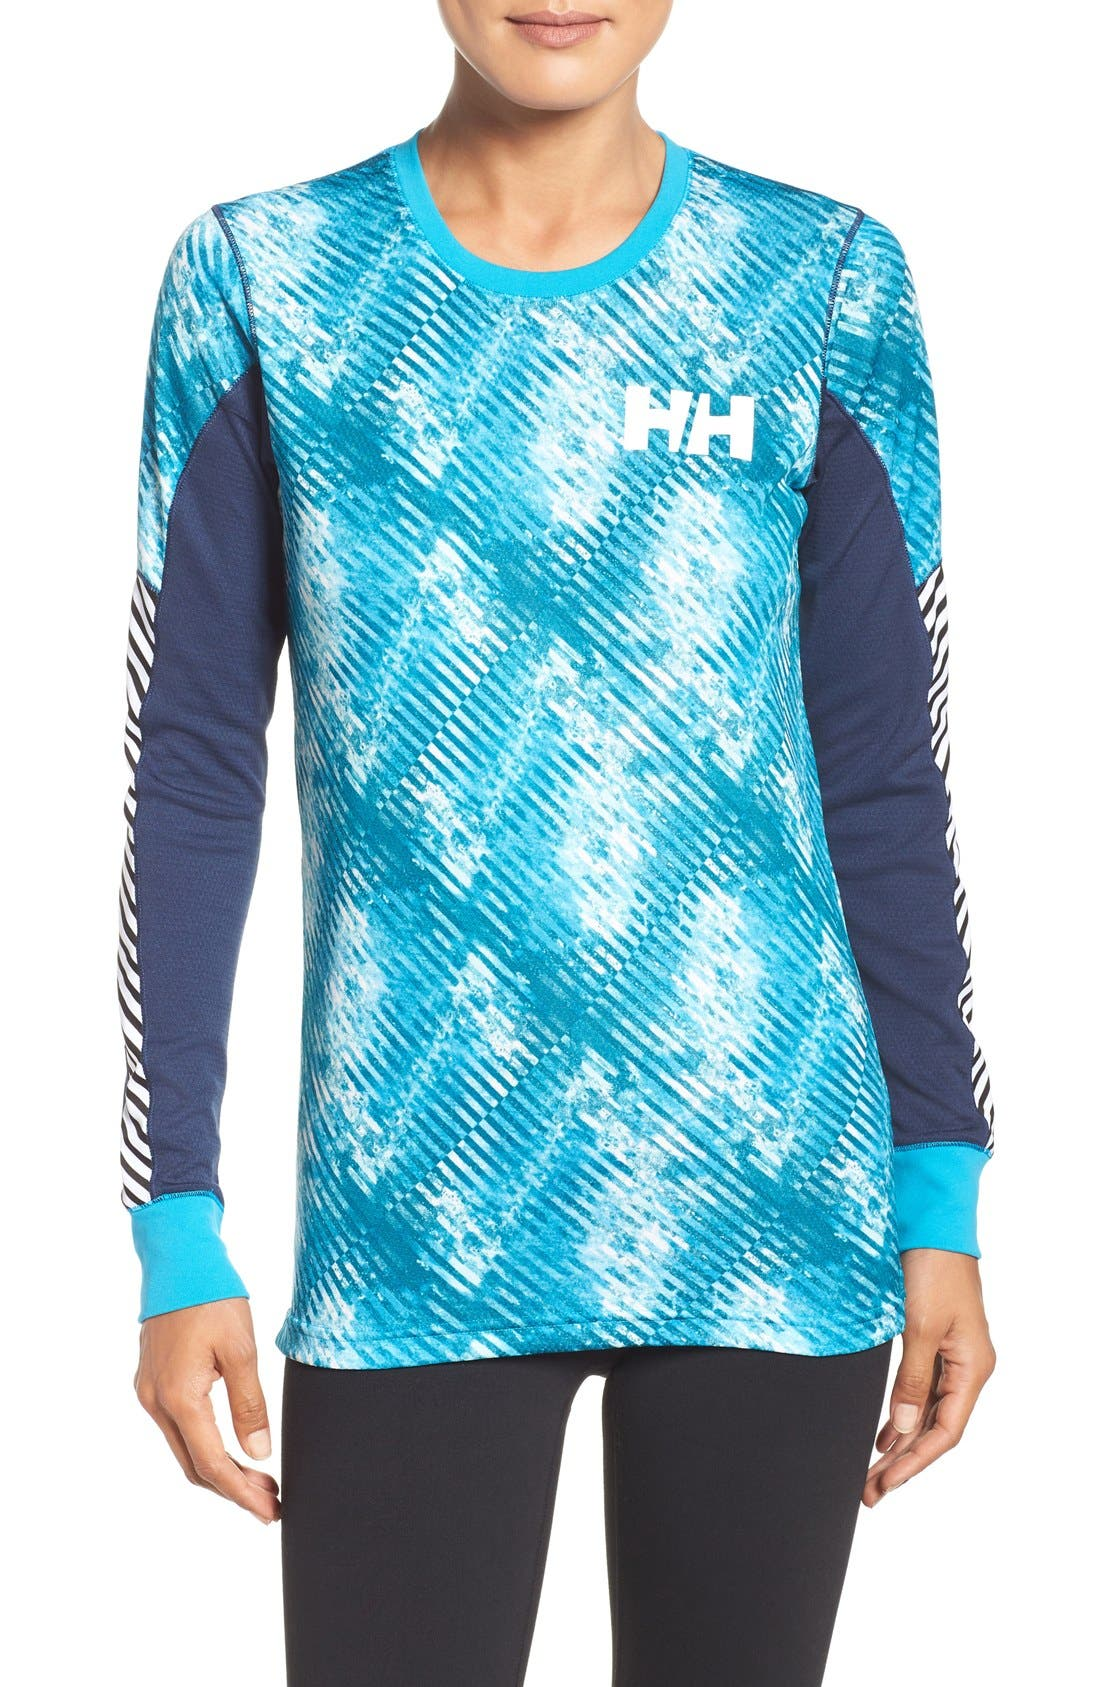 Main Image - Helly Hansen Active Flow Graphic Top